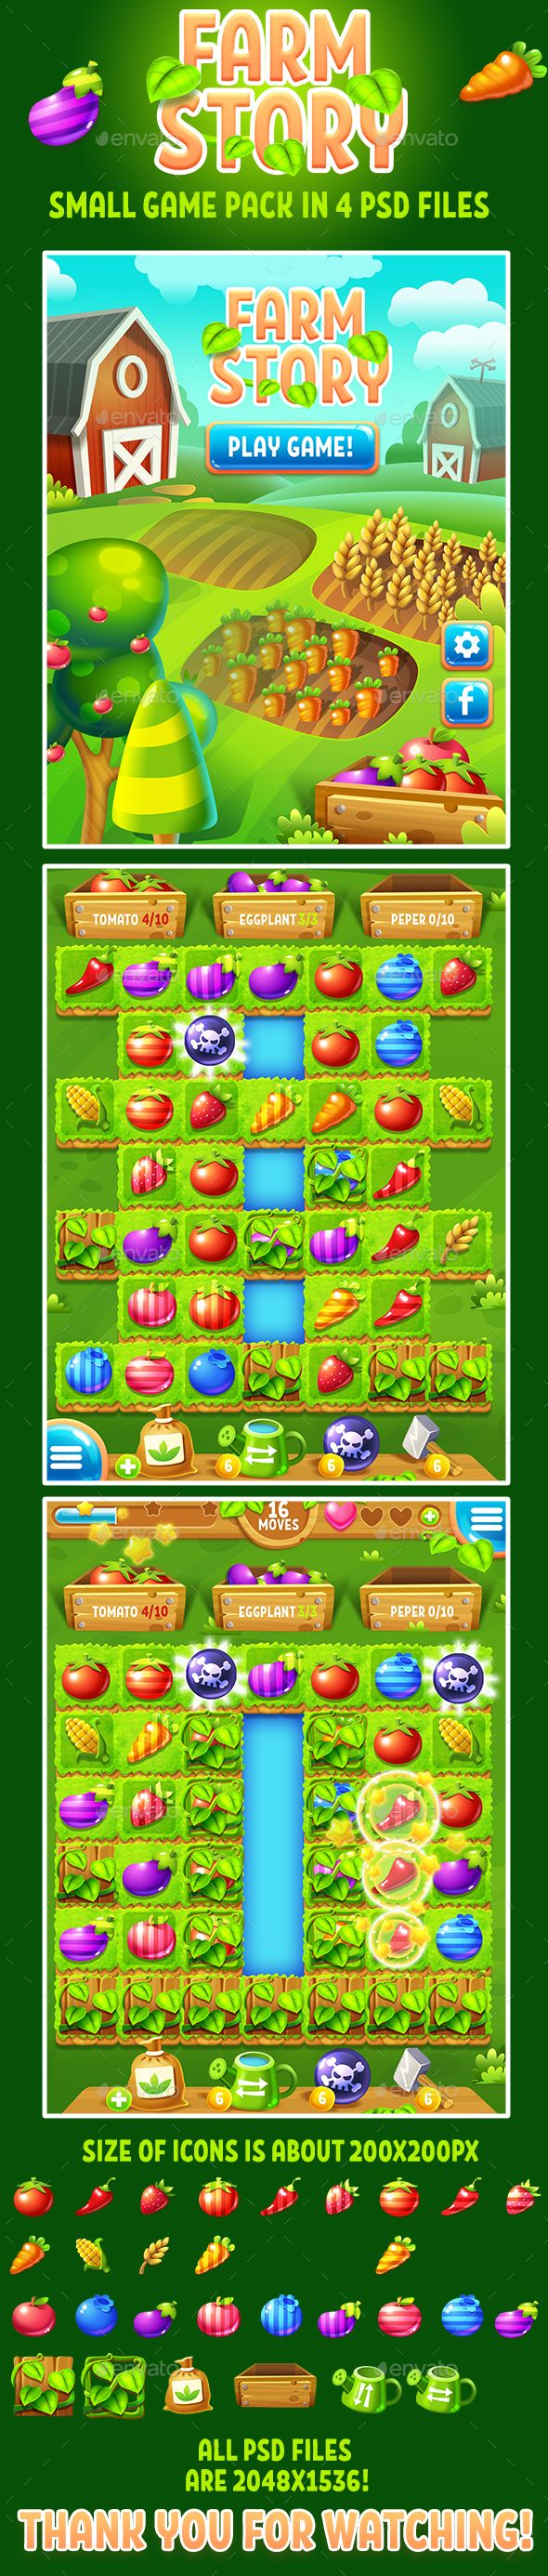 Farm Story Small Game Match-3 Pack